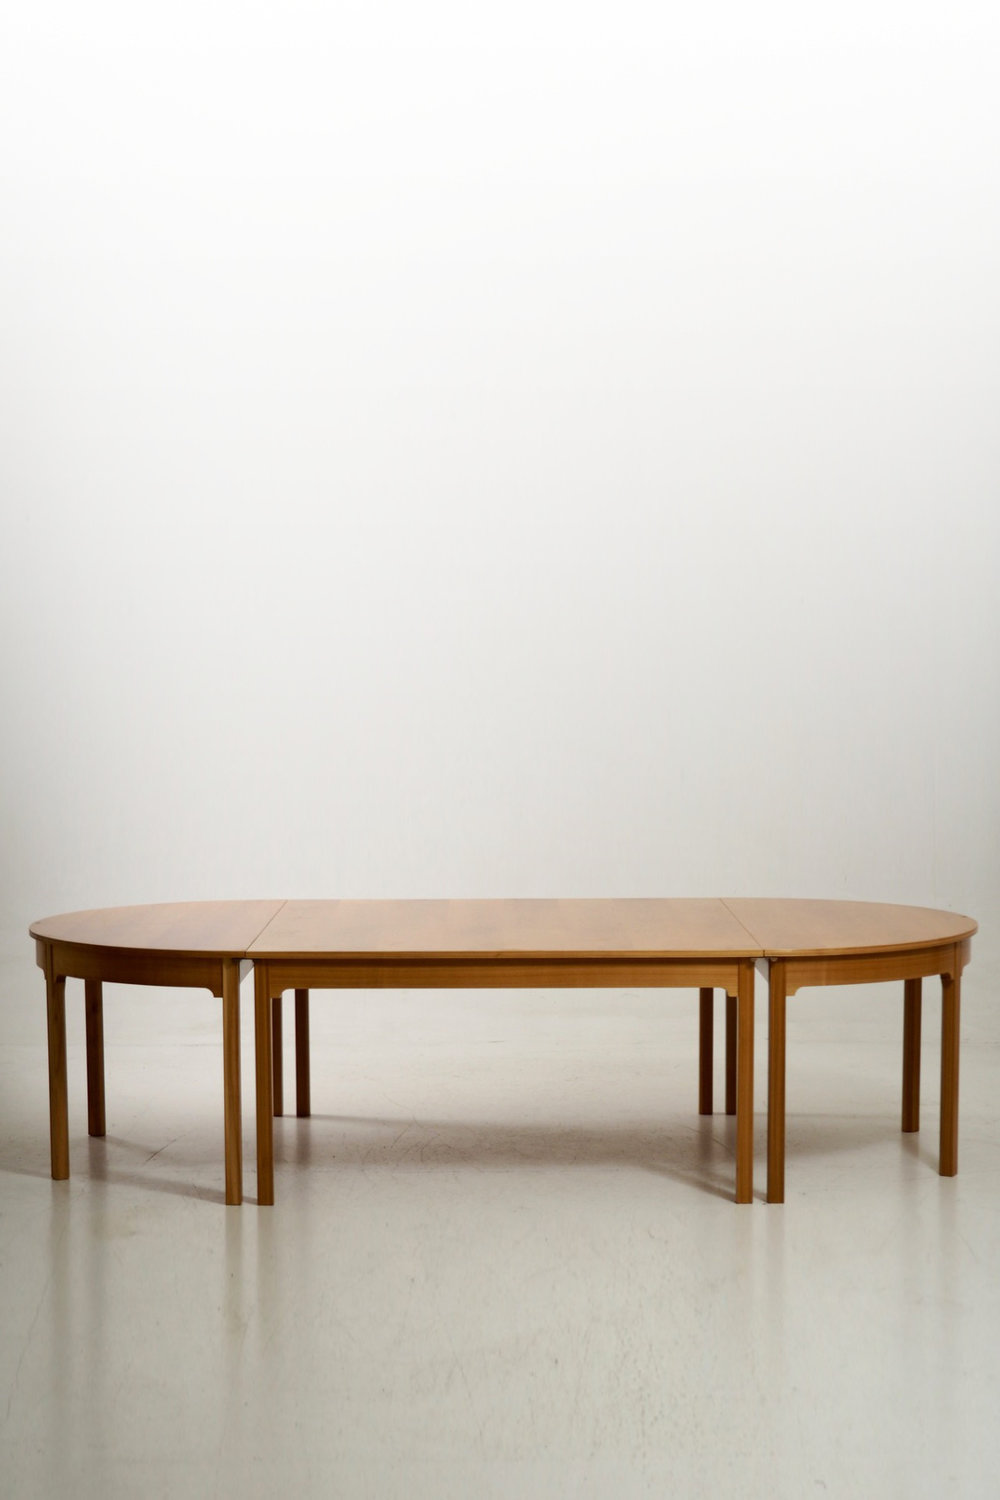 Very important table by Kaare Klint